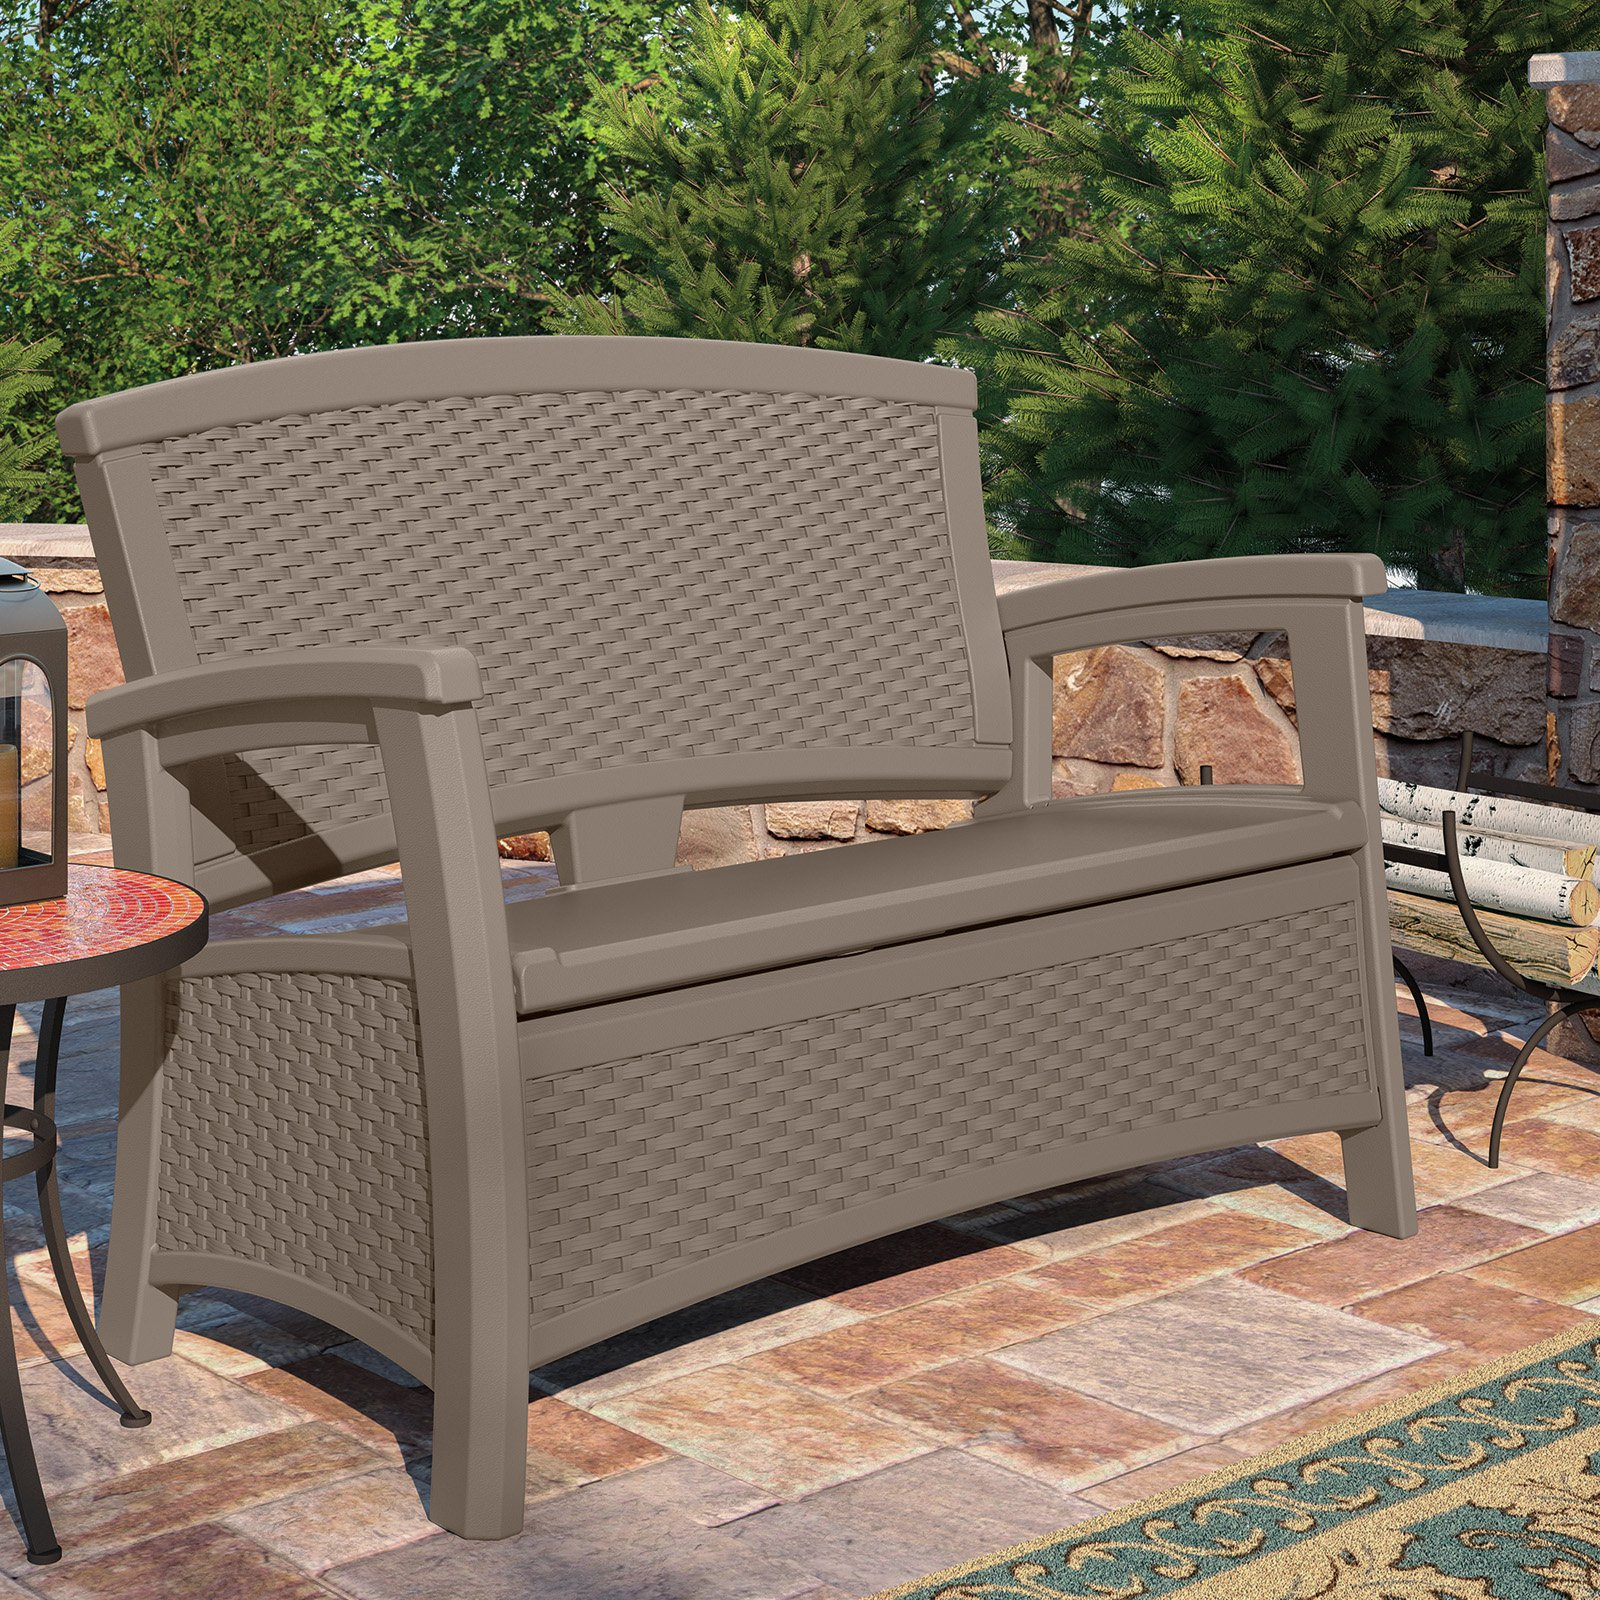 Suncast Elements Resin Wicker Bench with Storage, Java by Suncast